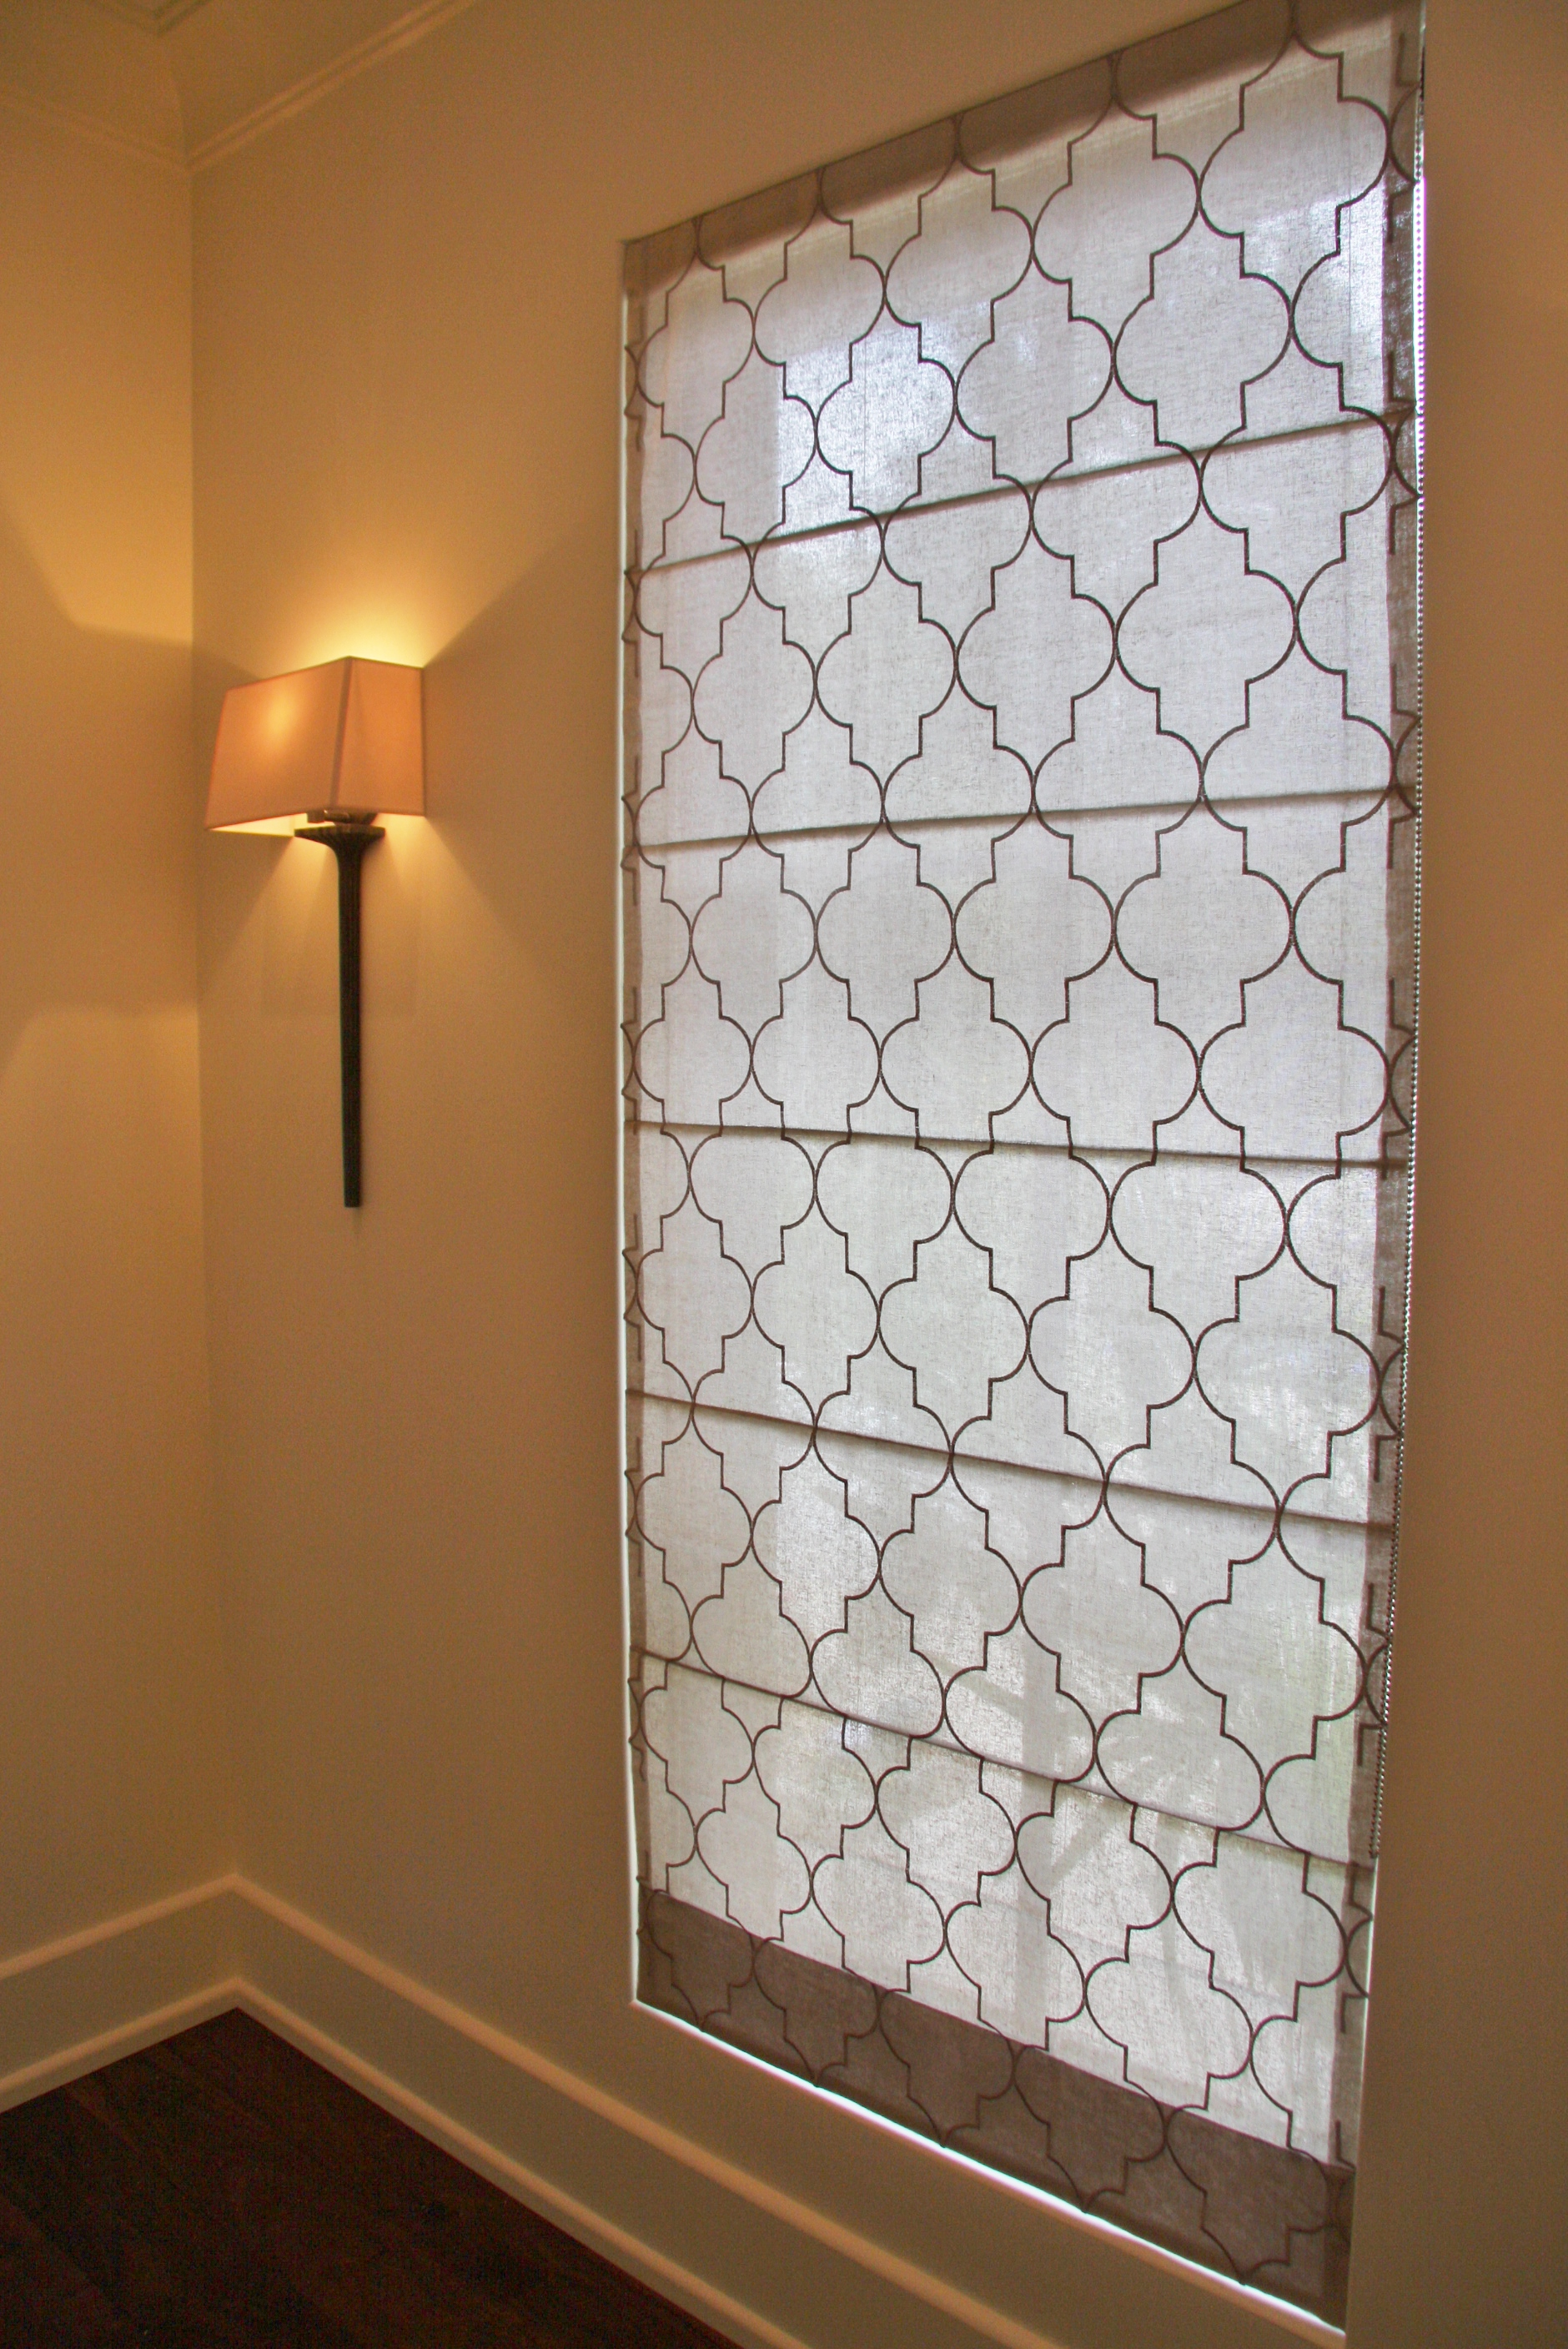 Studio Roman Shade with easy lift system